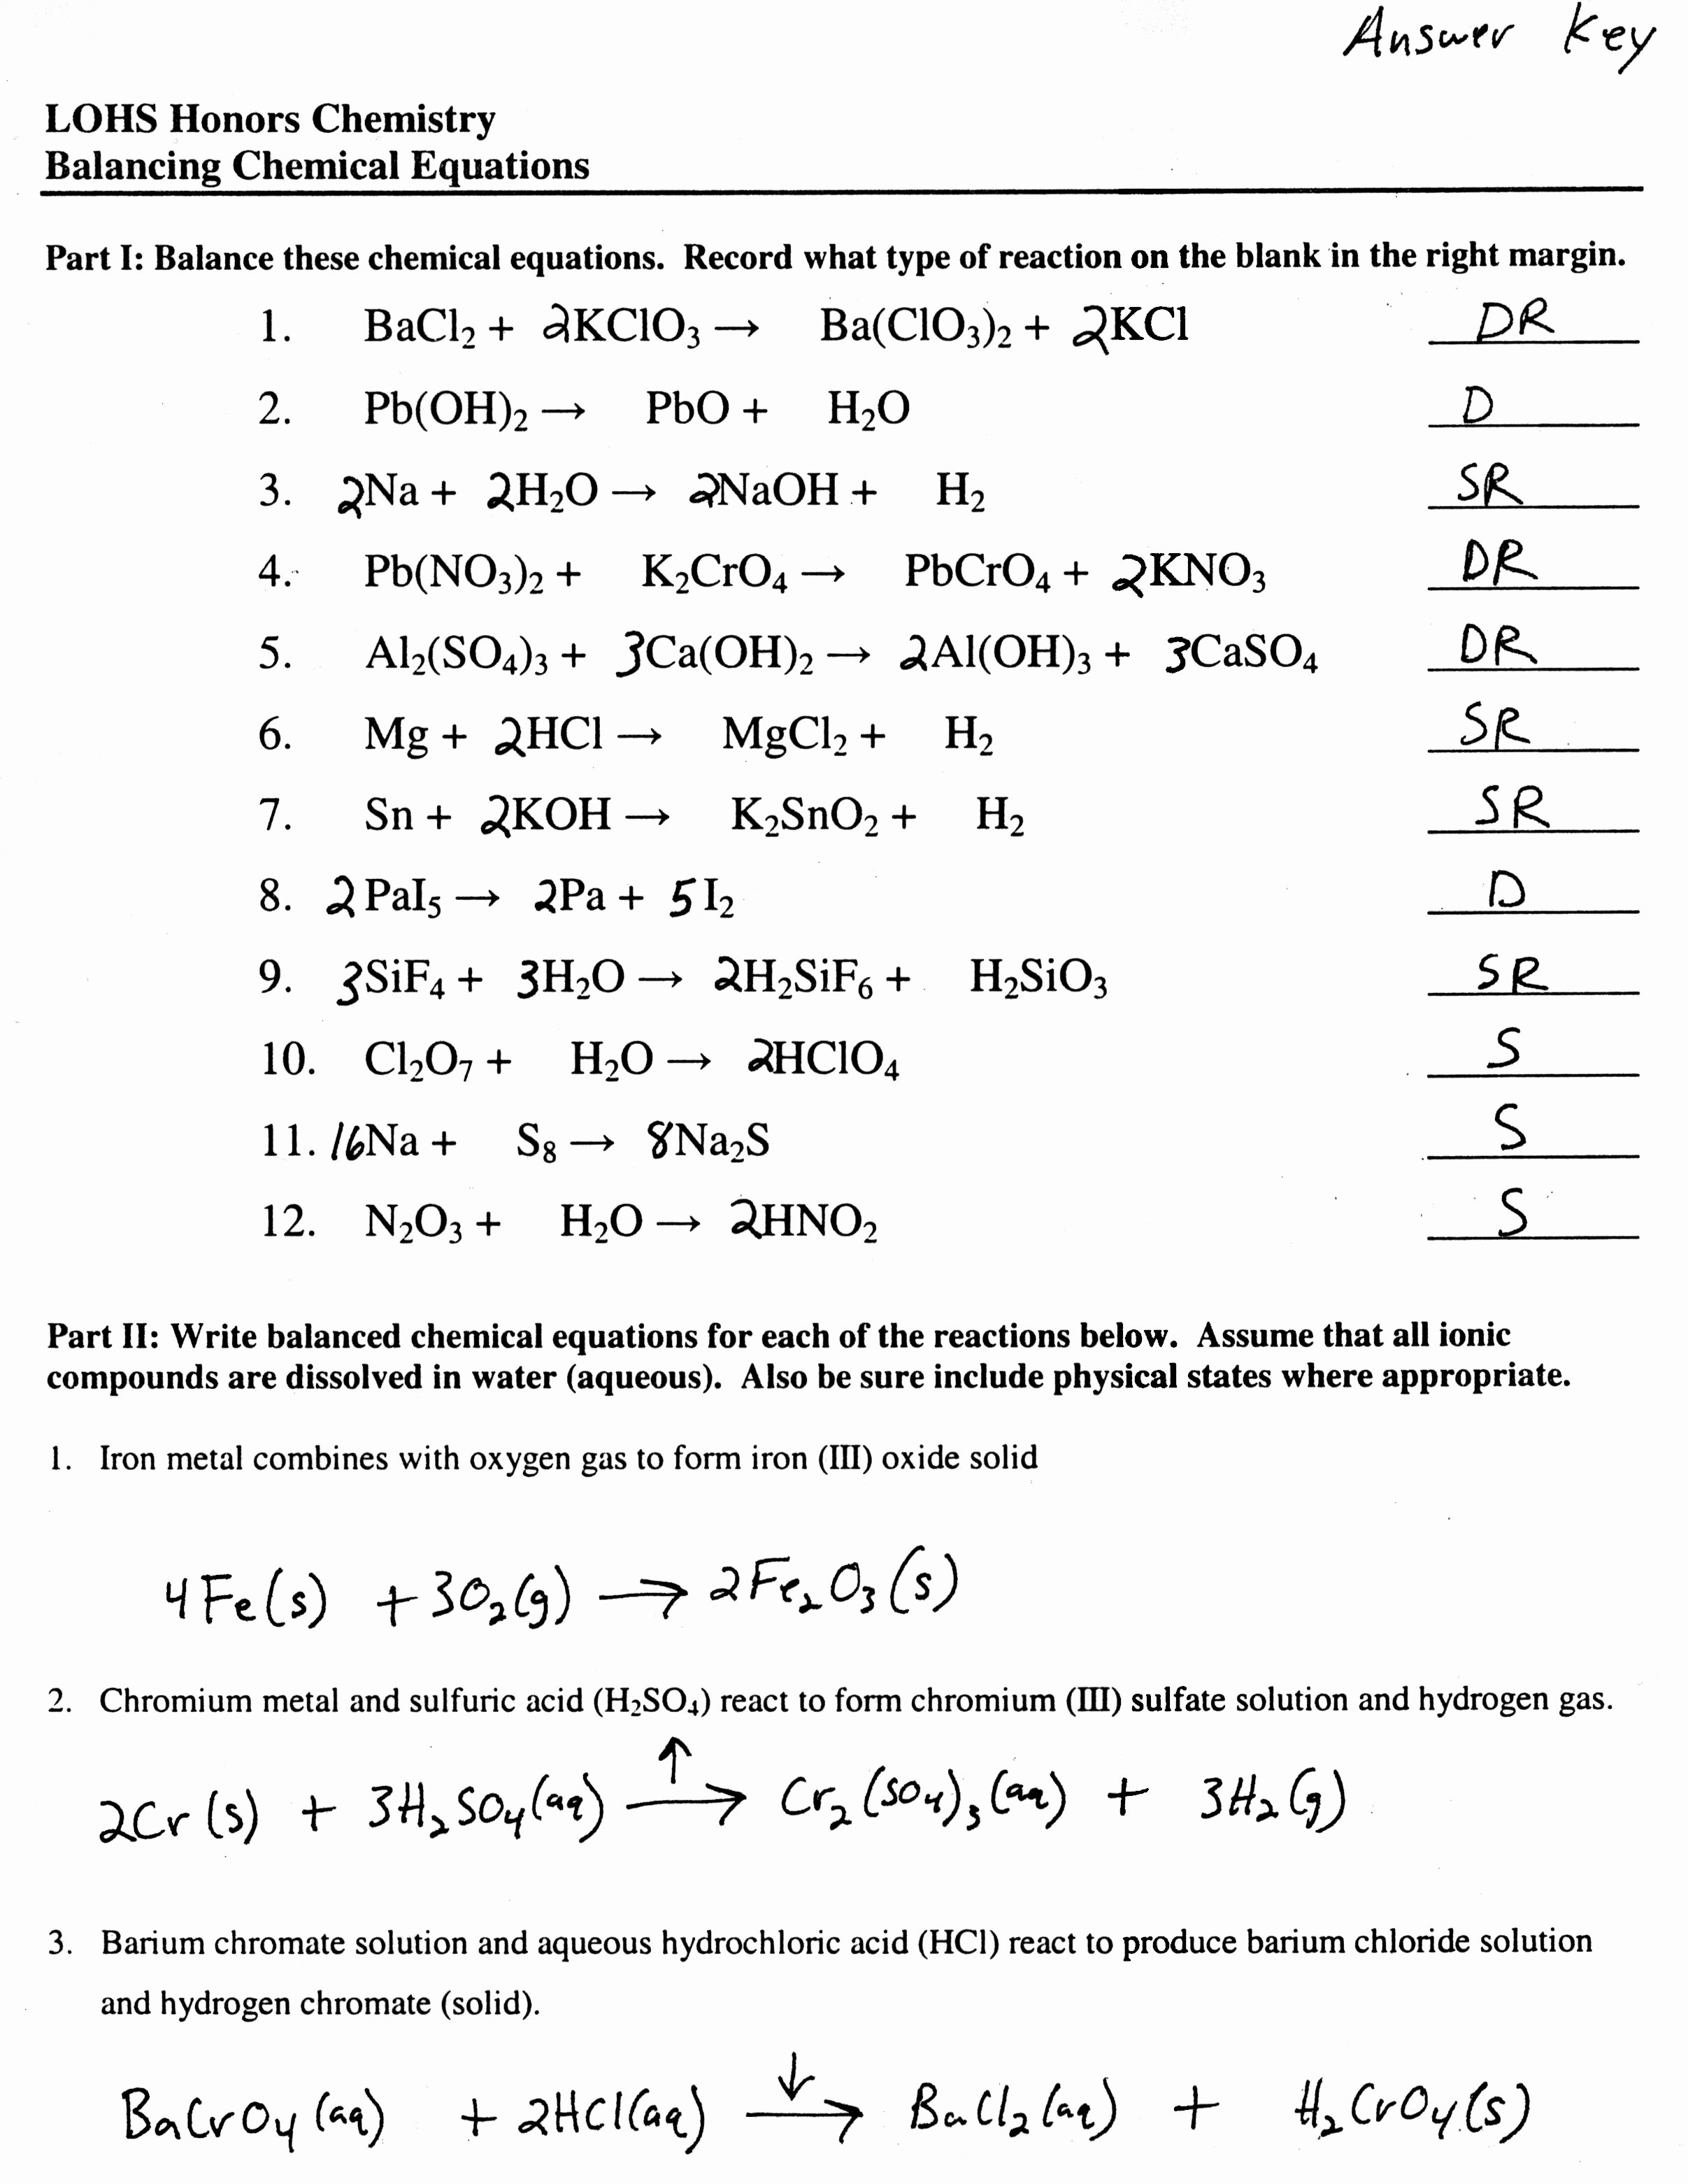 Balancing Chemical Equations Review Worksheet Answers ...